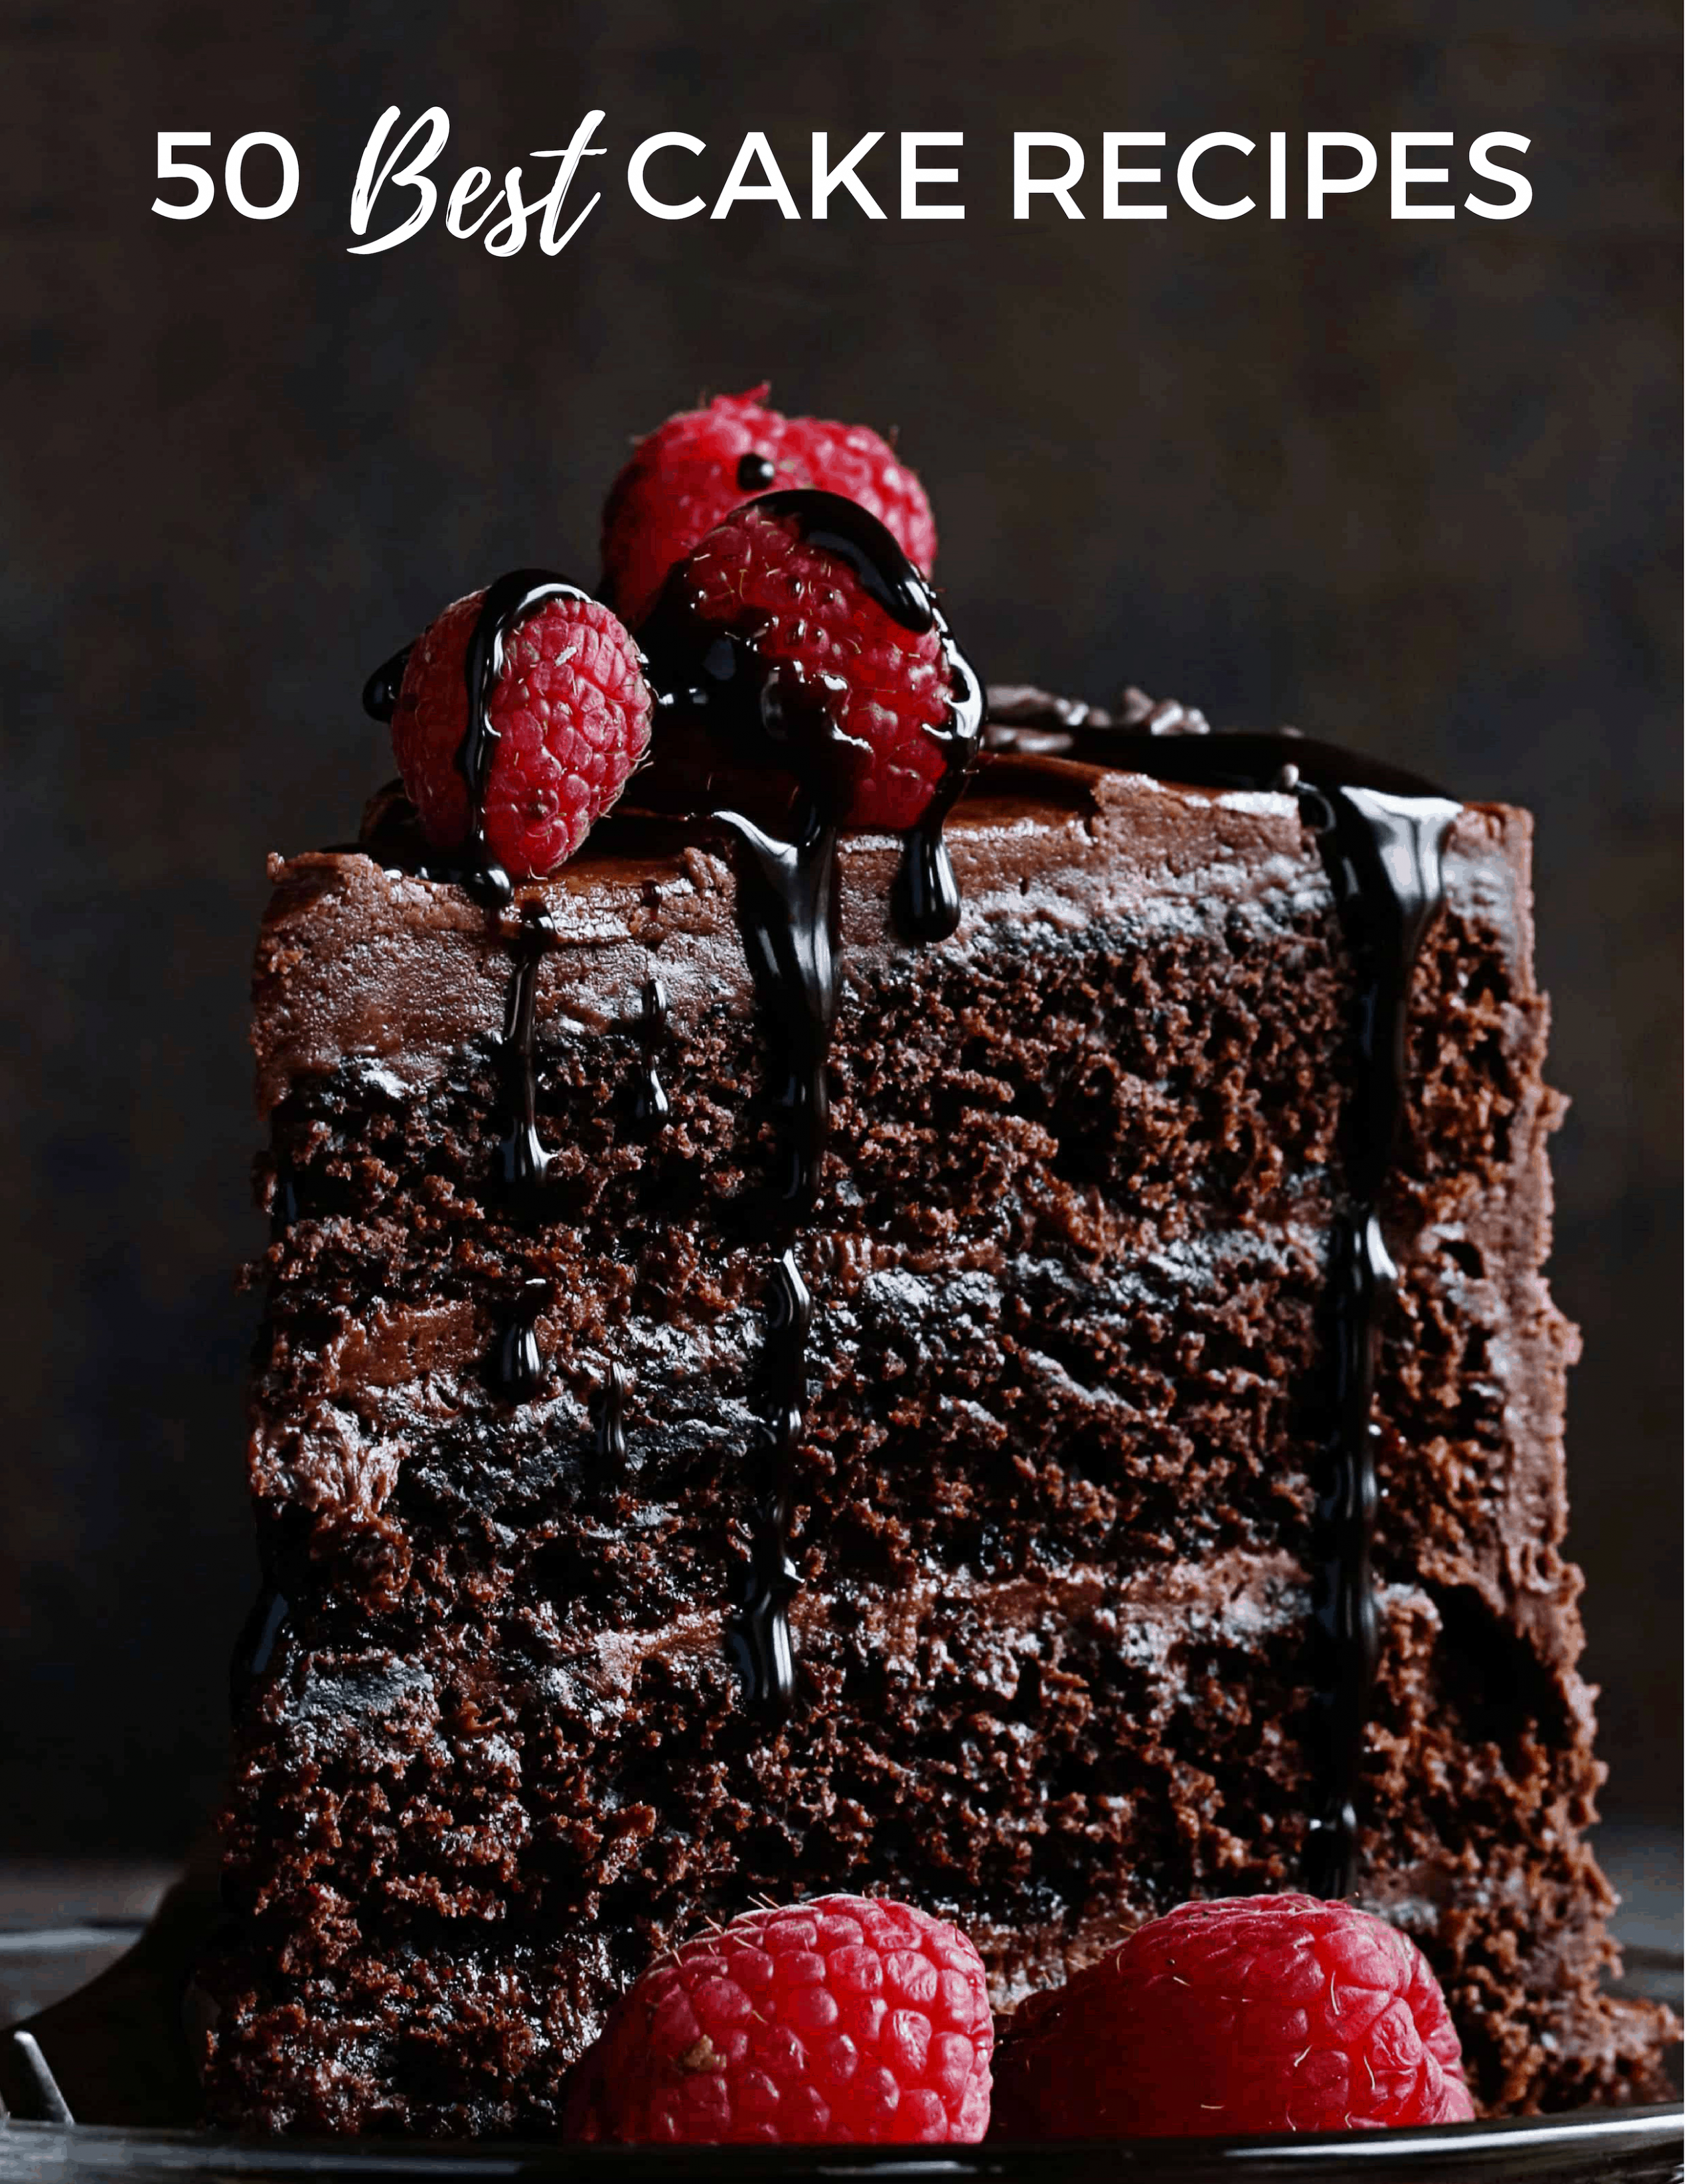 The 12 Best Cake Recipes in the World | i am baker